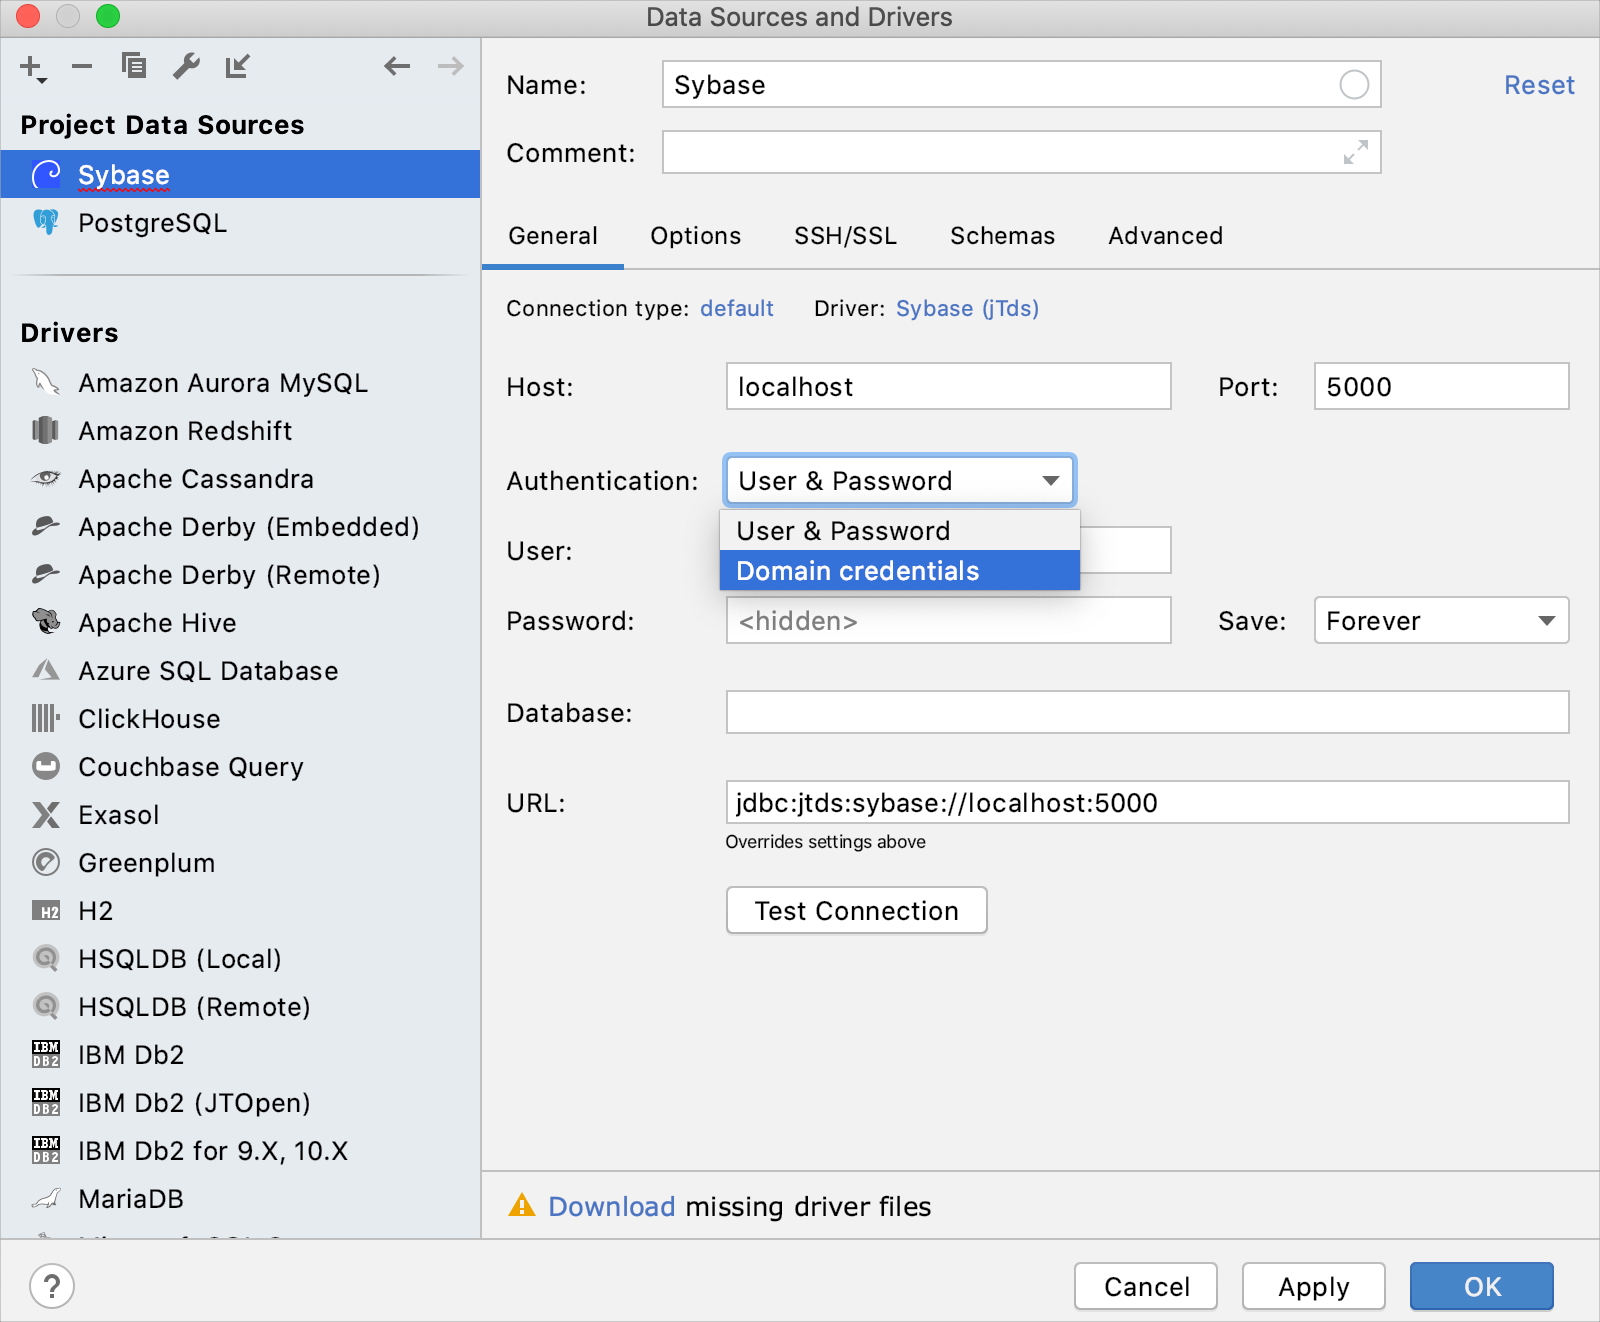 Integration with Sybase ASE